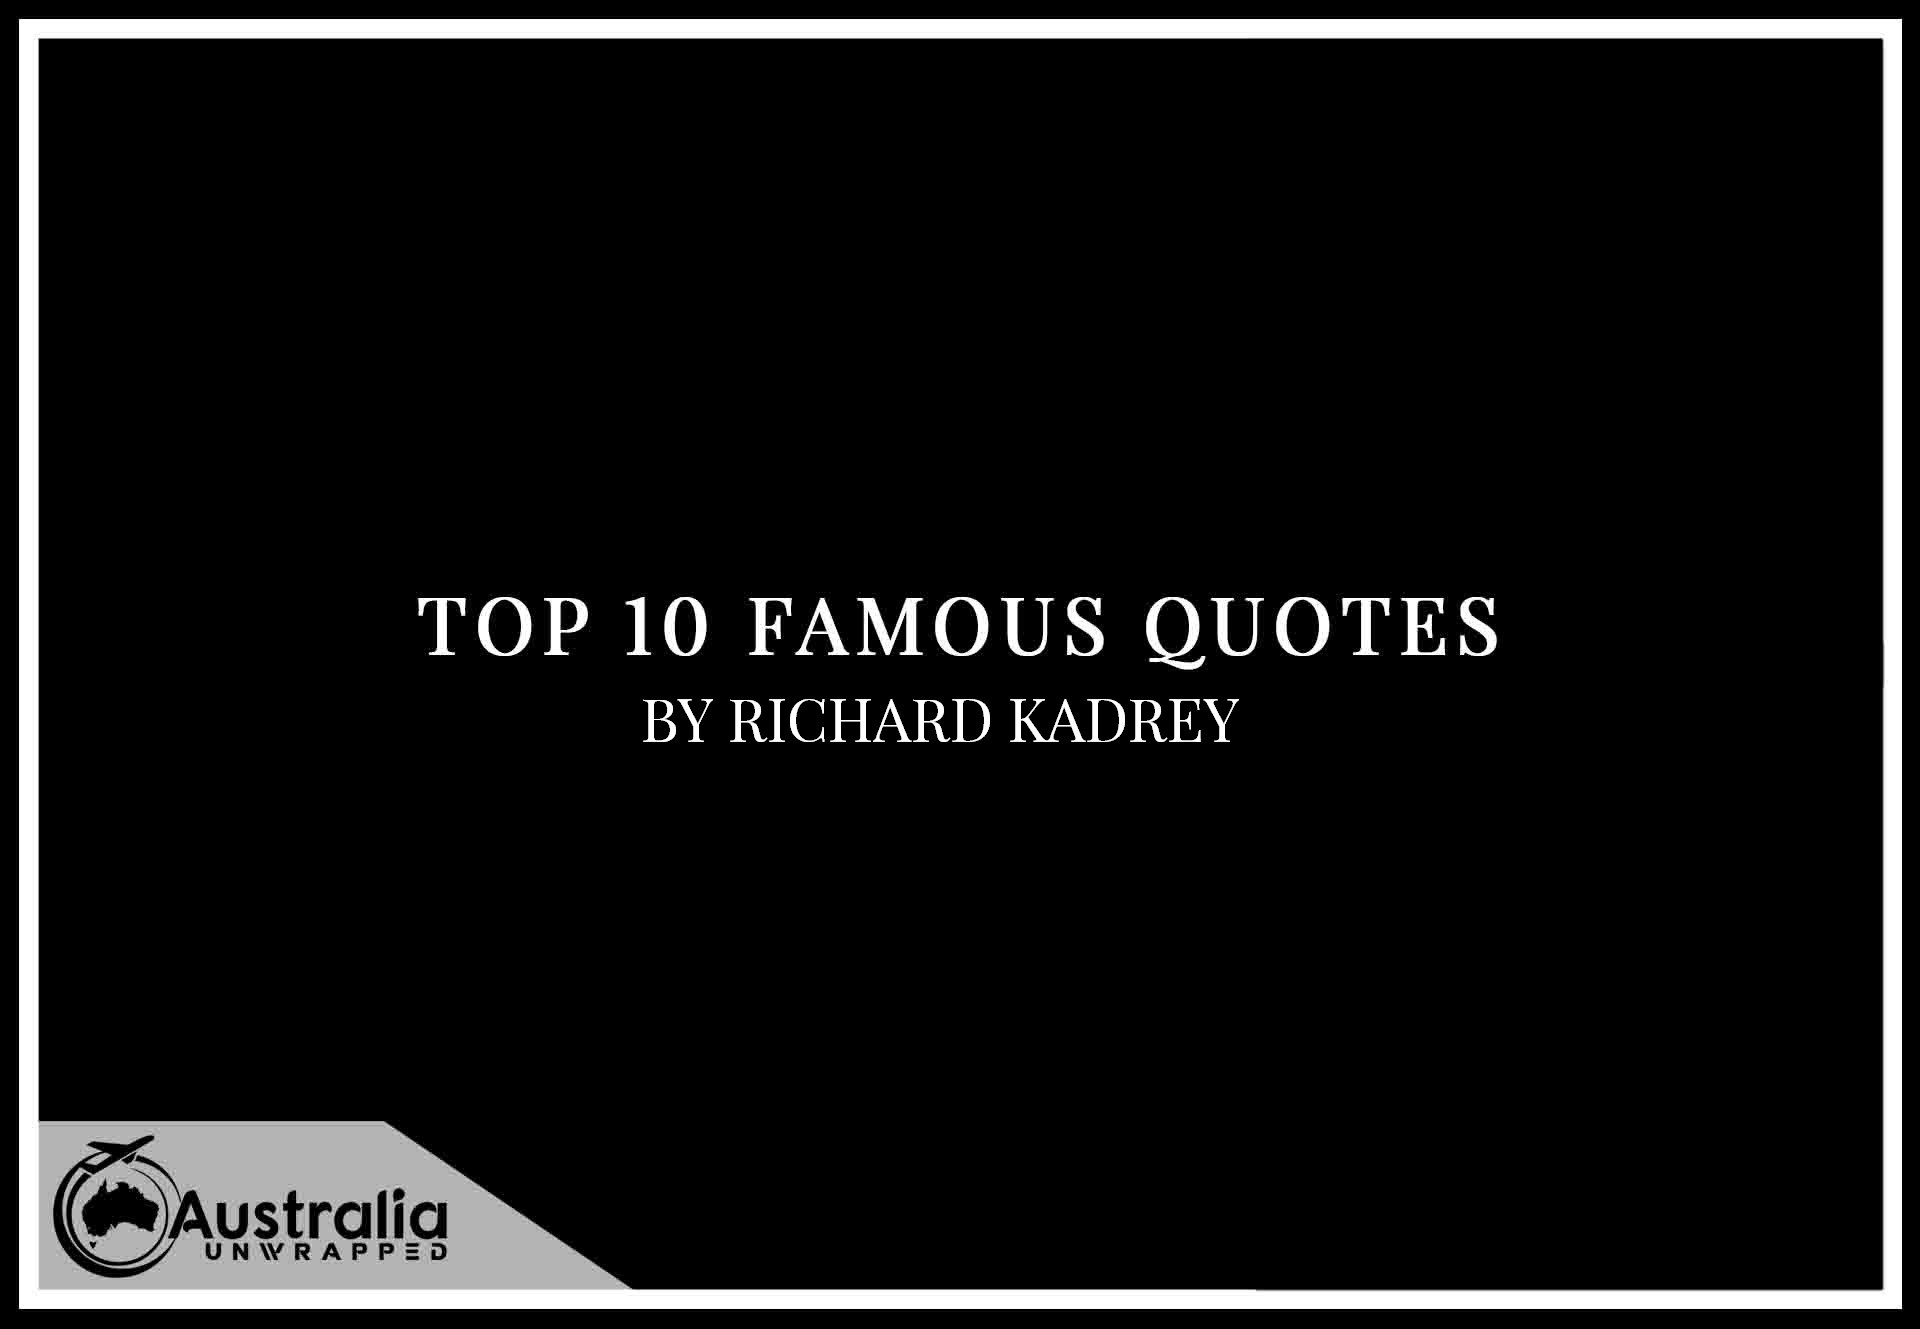 Top 10 Famous Quotes by Author Richard Kadrey